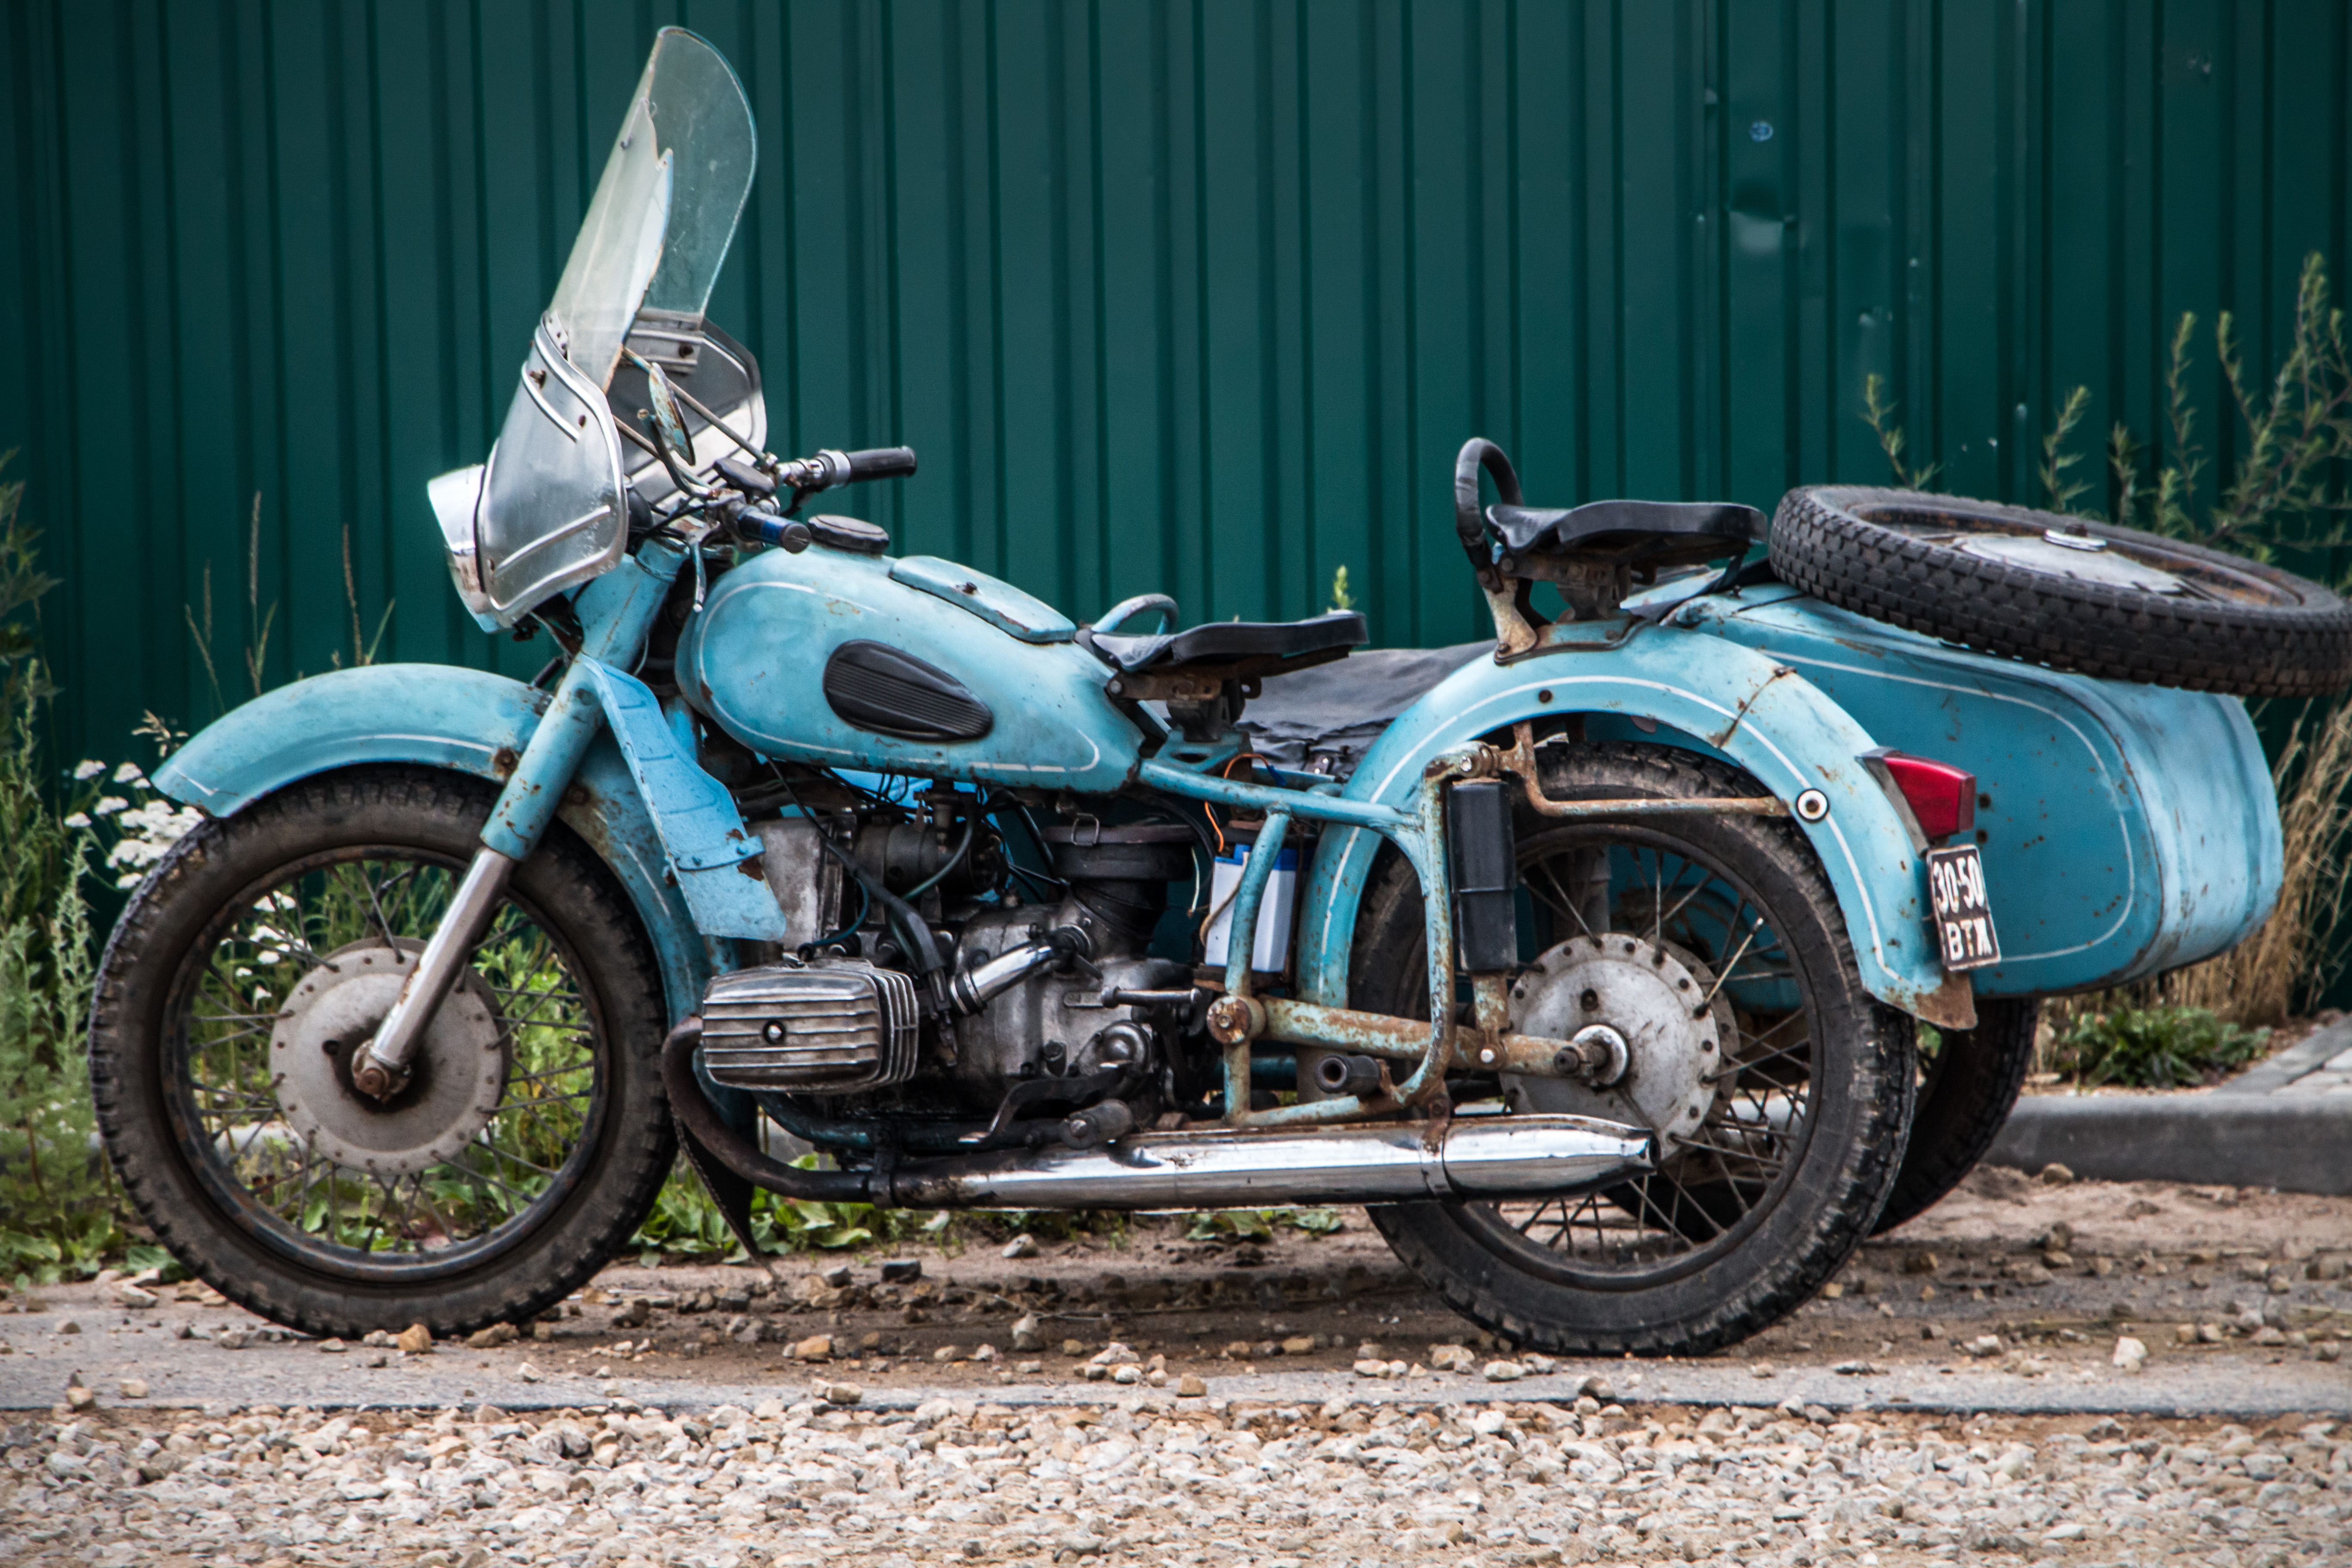 Old Motorcycle, Bike, Blue, City, Lovely, HQ Photo